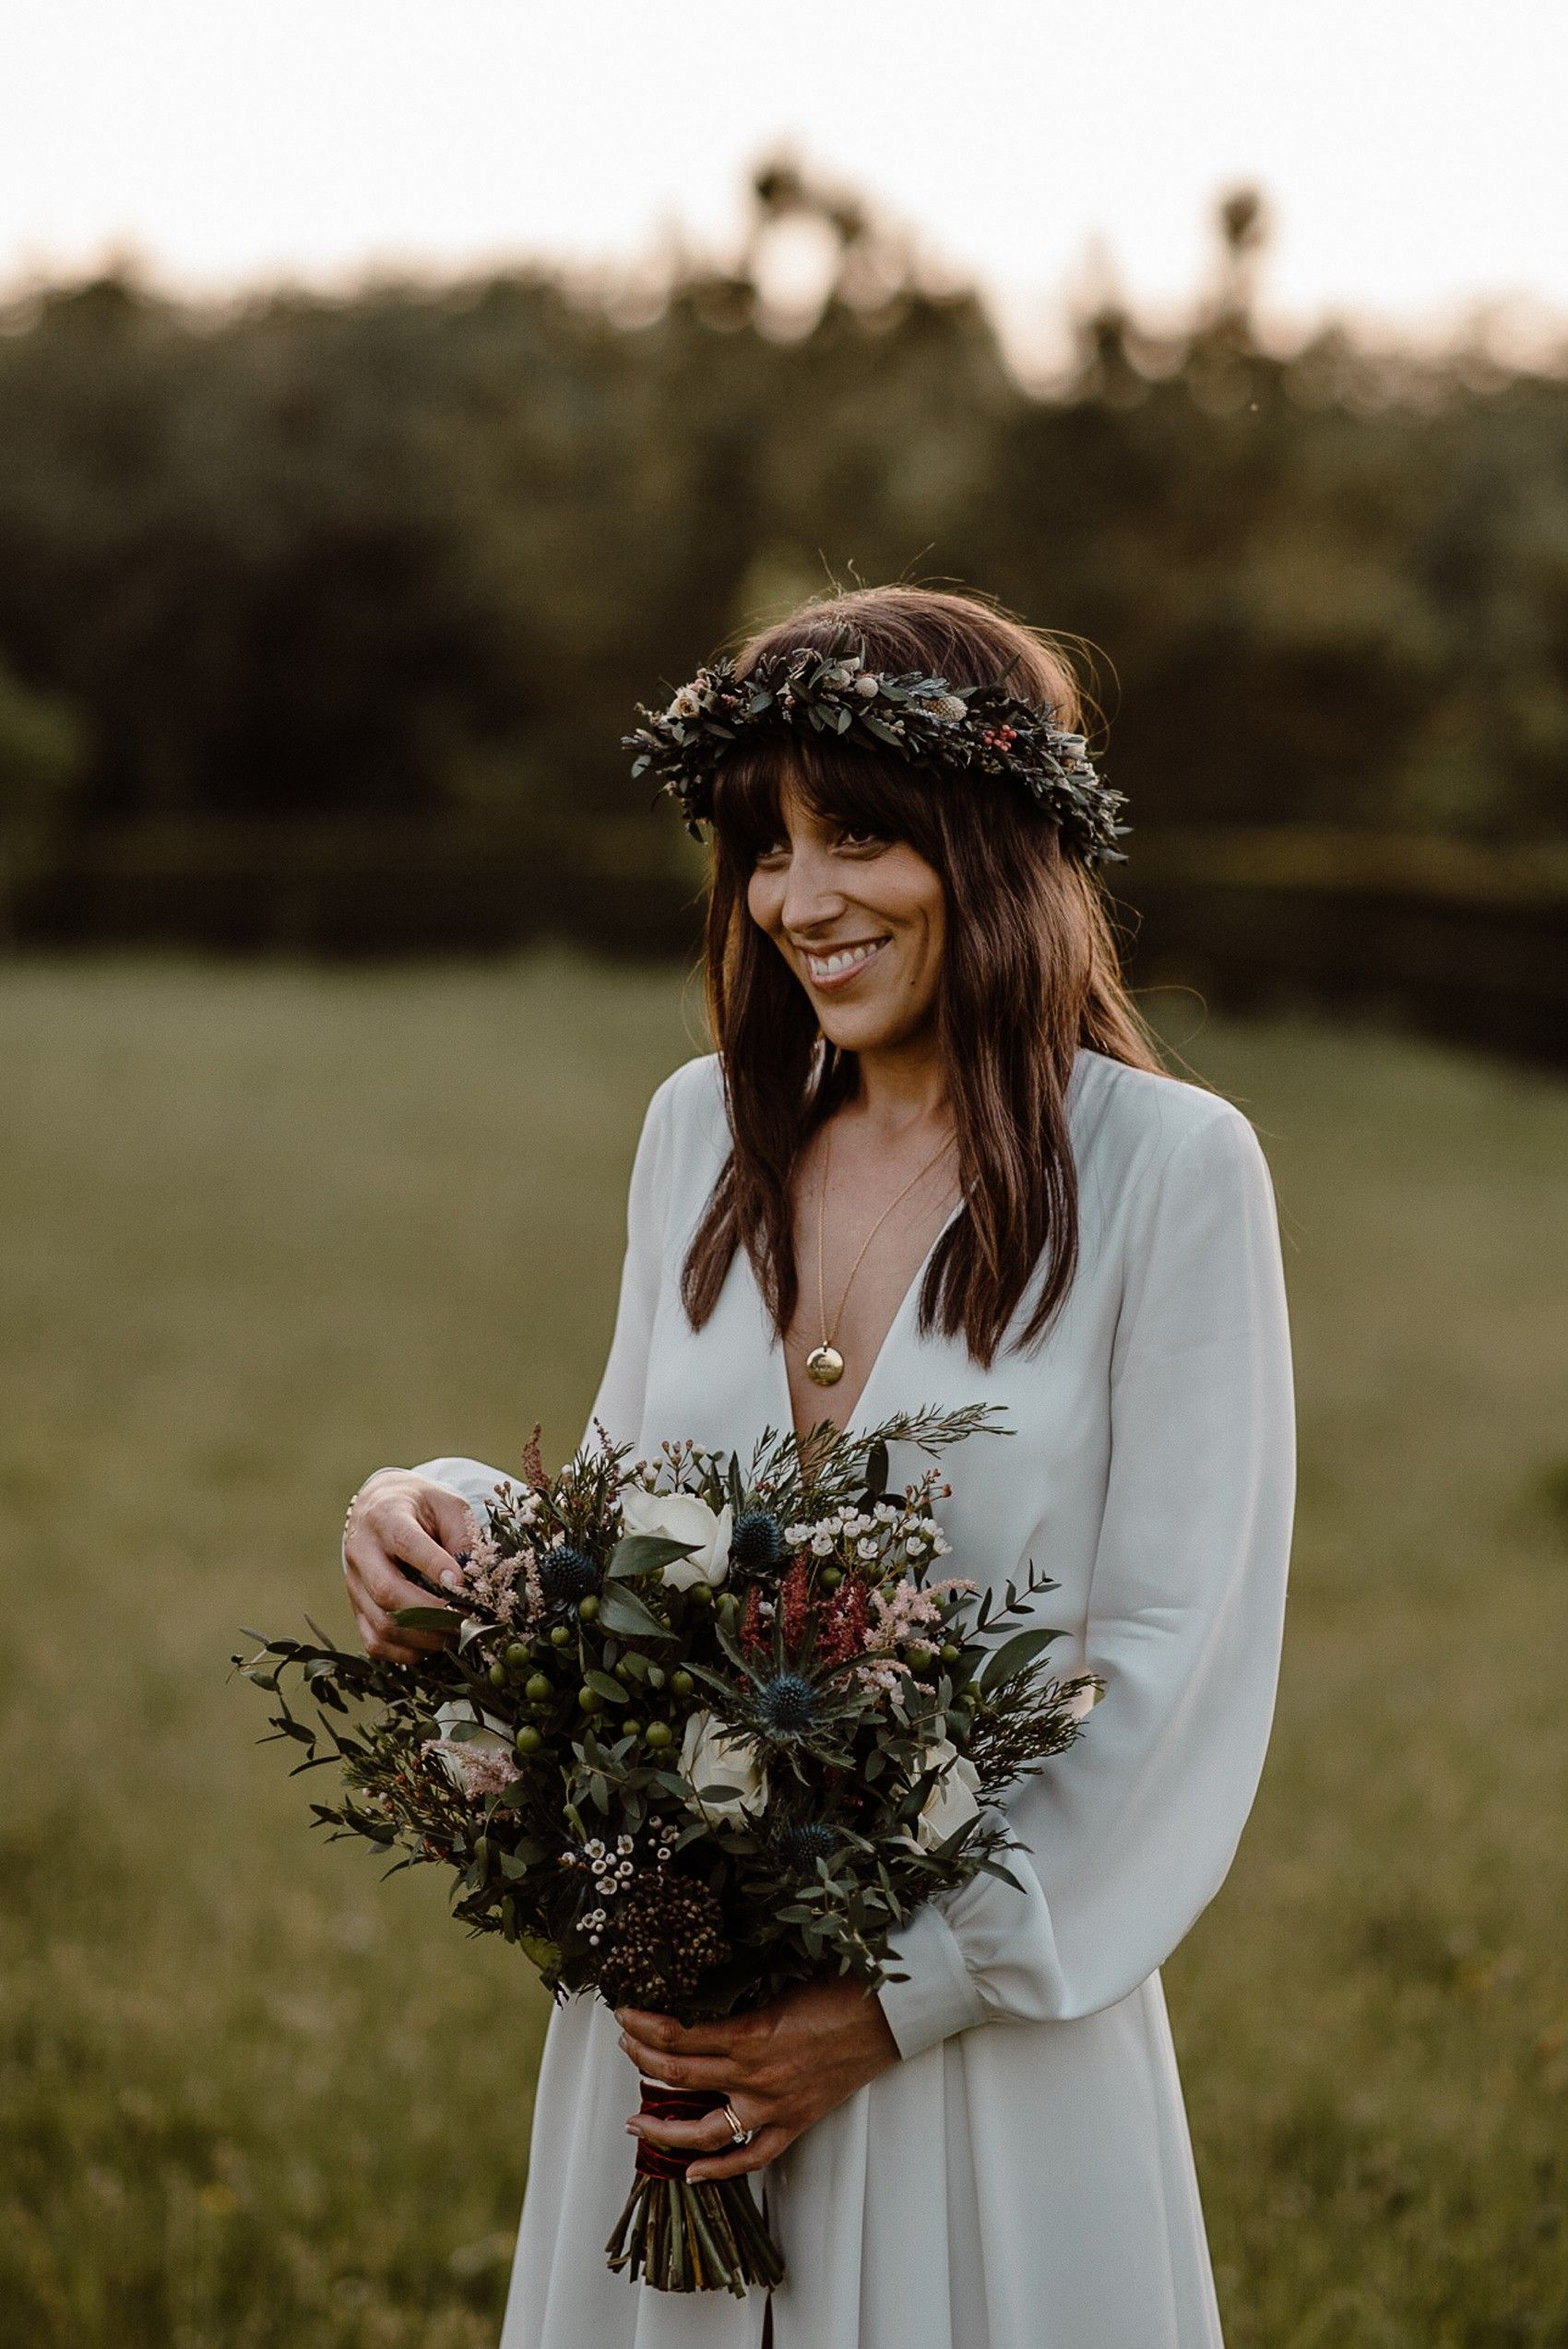 Bride wears a dried flower crown of meadow flowers. Kelly McAllister Photography #flowercrown #driedflowercrown #weddingaccessories #bridalaccessories #weddinghair